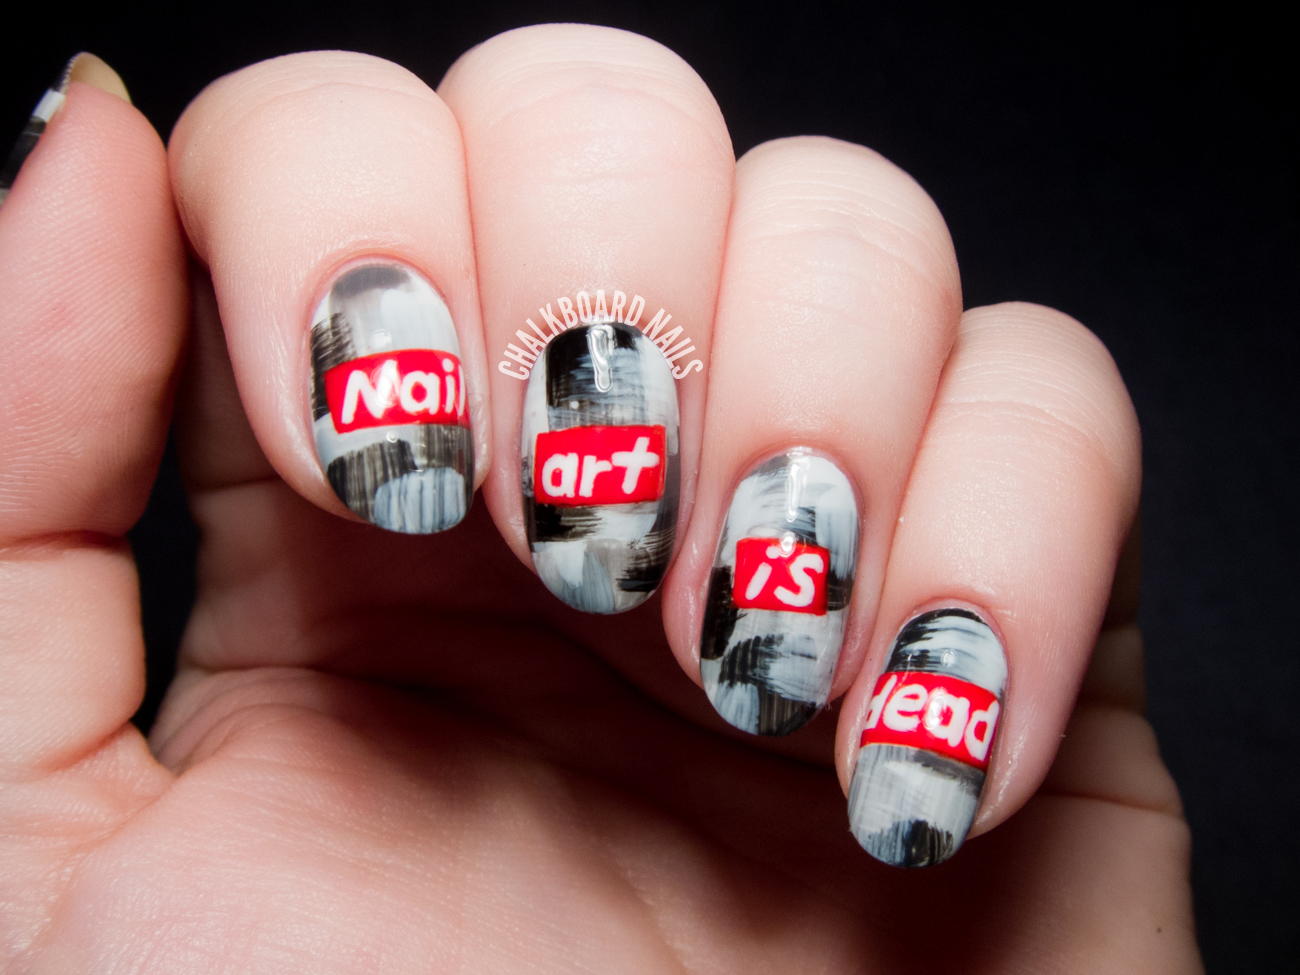 Barbara Kruger inspired nail art by @chalkboardnails